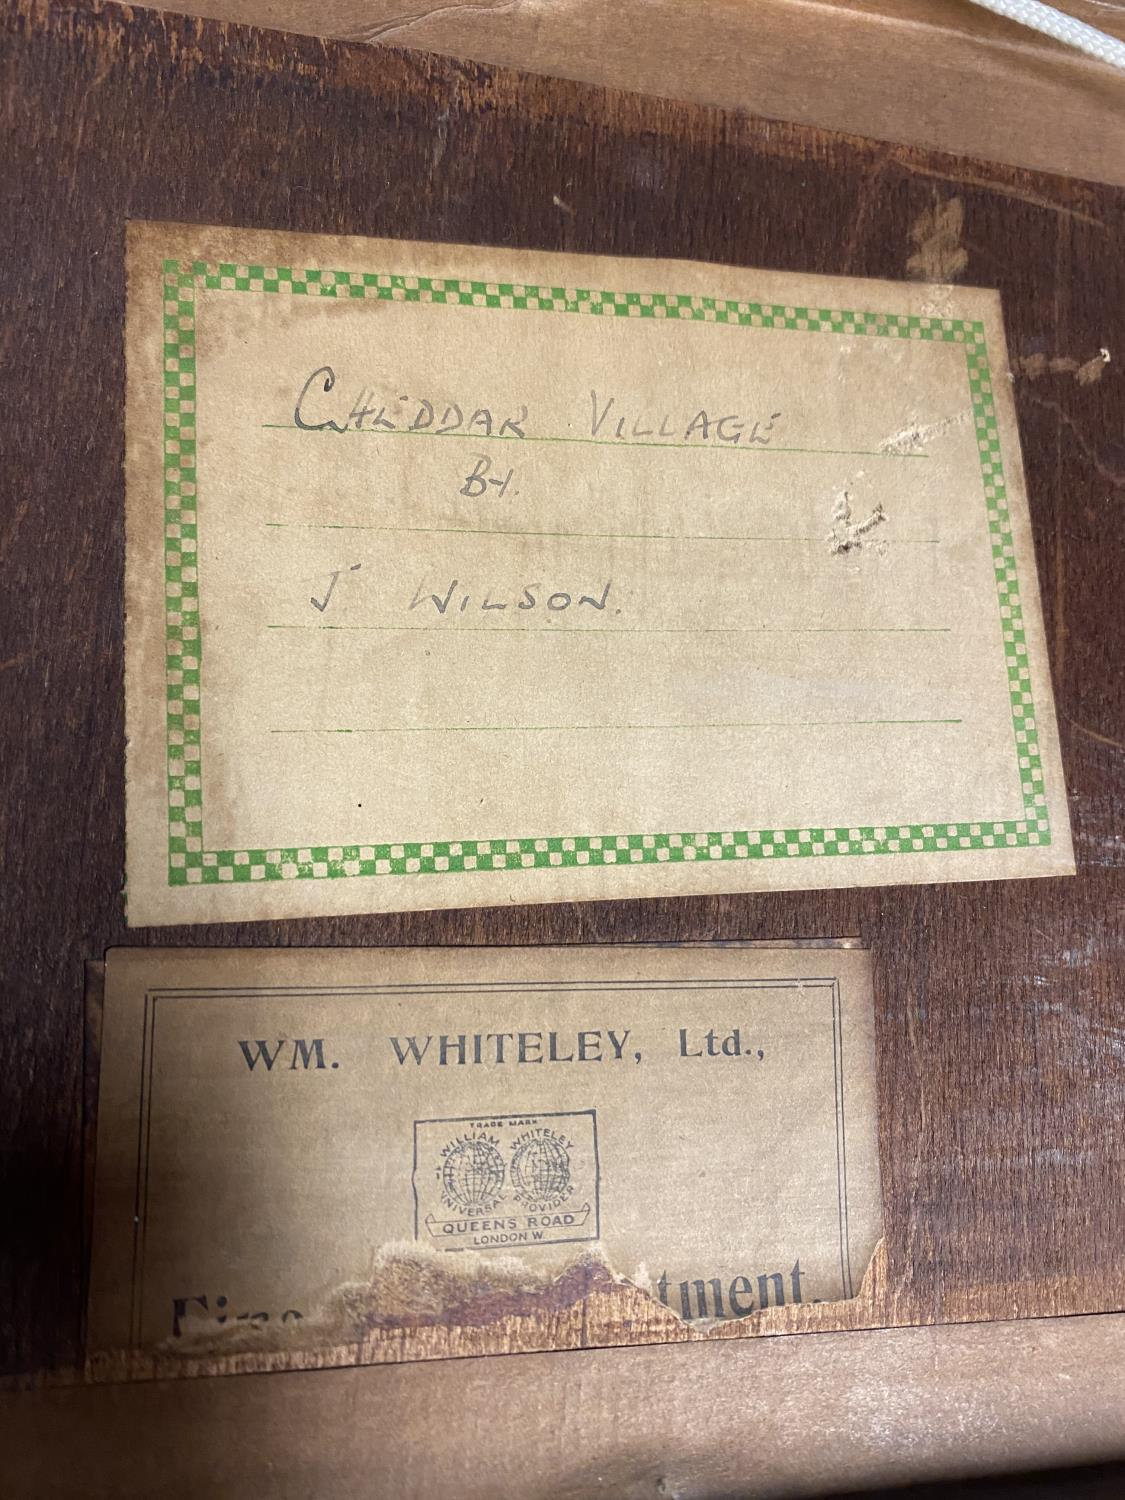 Pair of C19th watercolours, label verso, Cheddar Village and Porlock Village by Moonlight, J Wilson, - Image 6 of 7